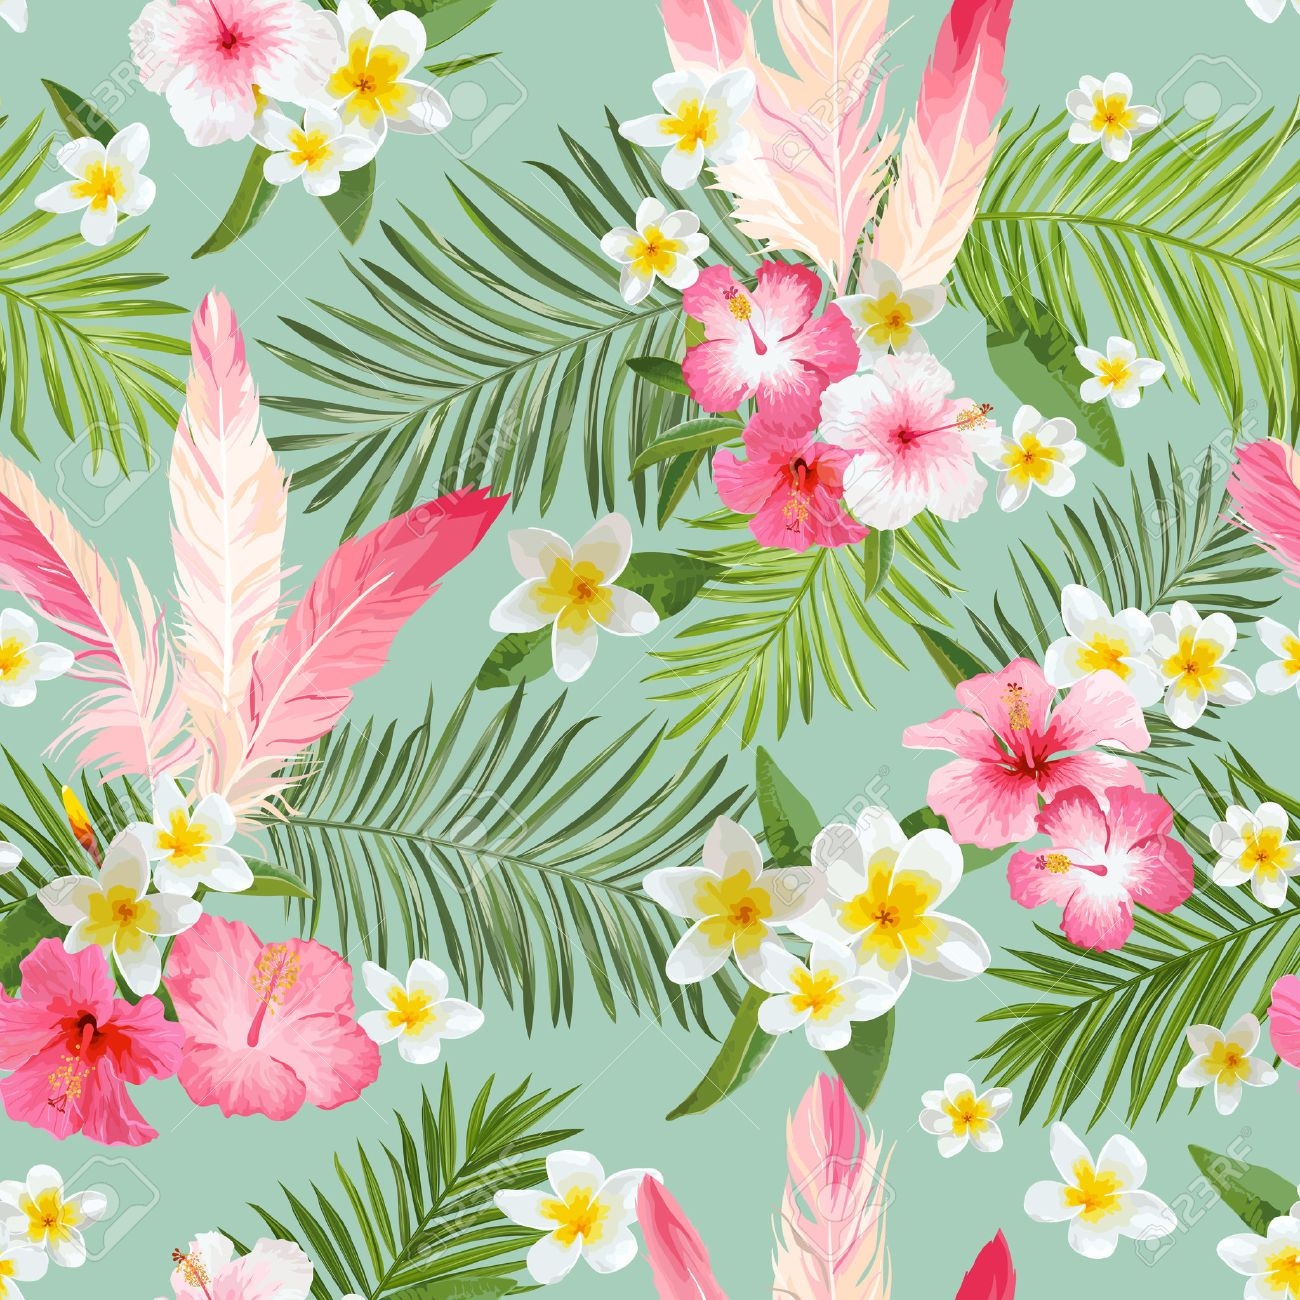 Tropical Flowers Background Vintage Seamless Pattern Vector